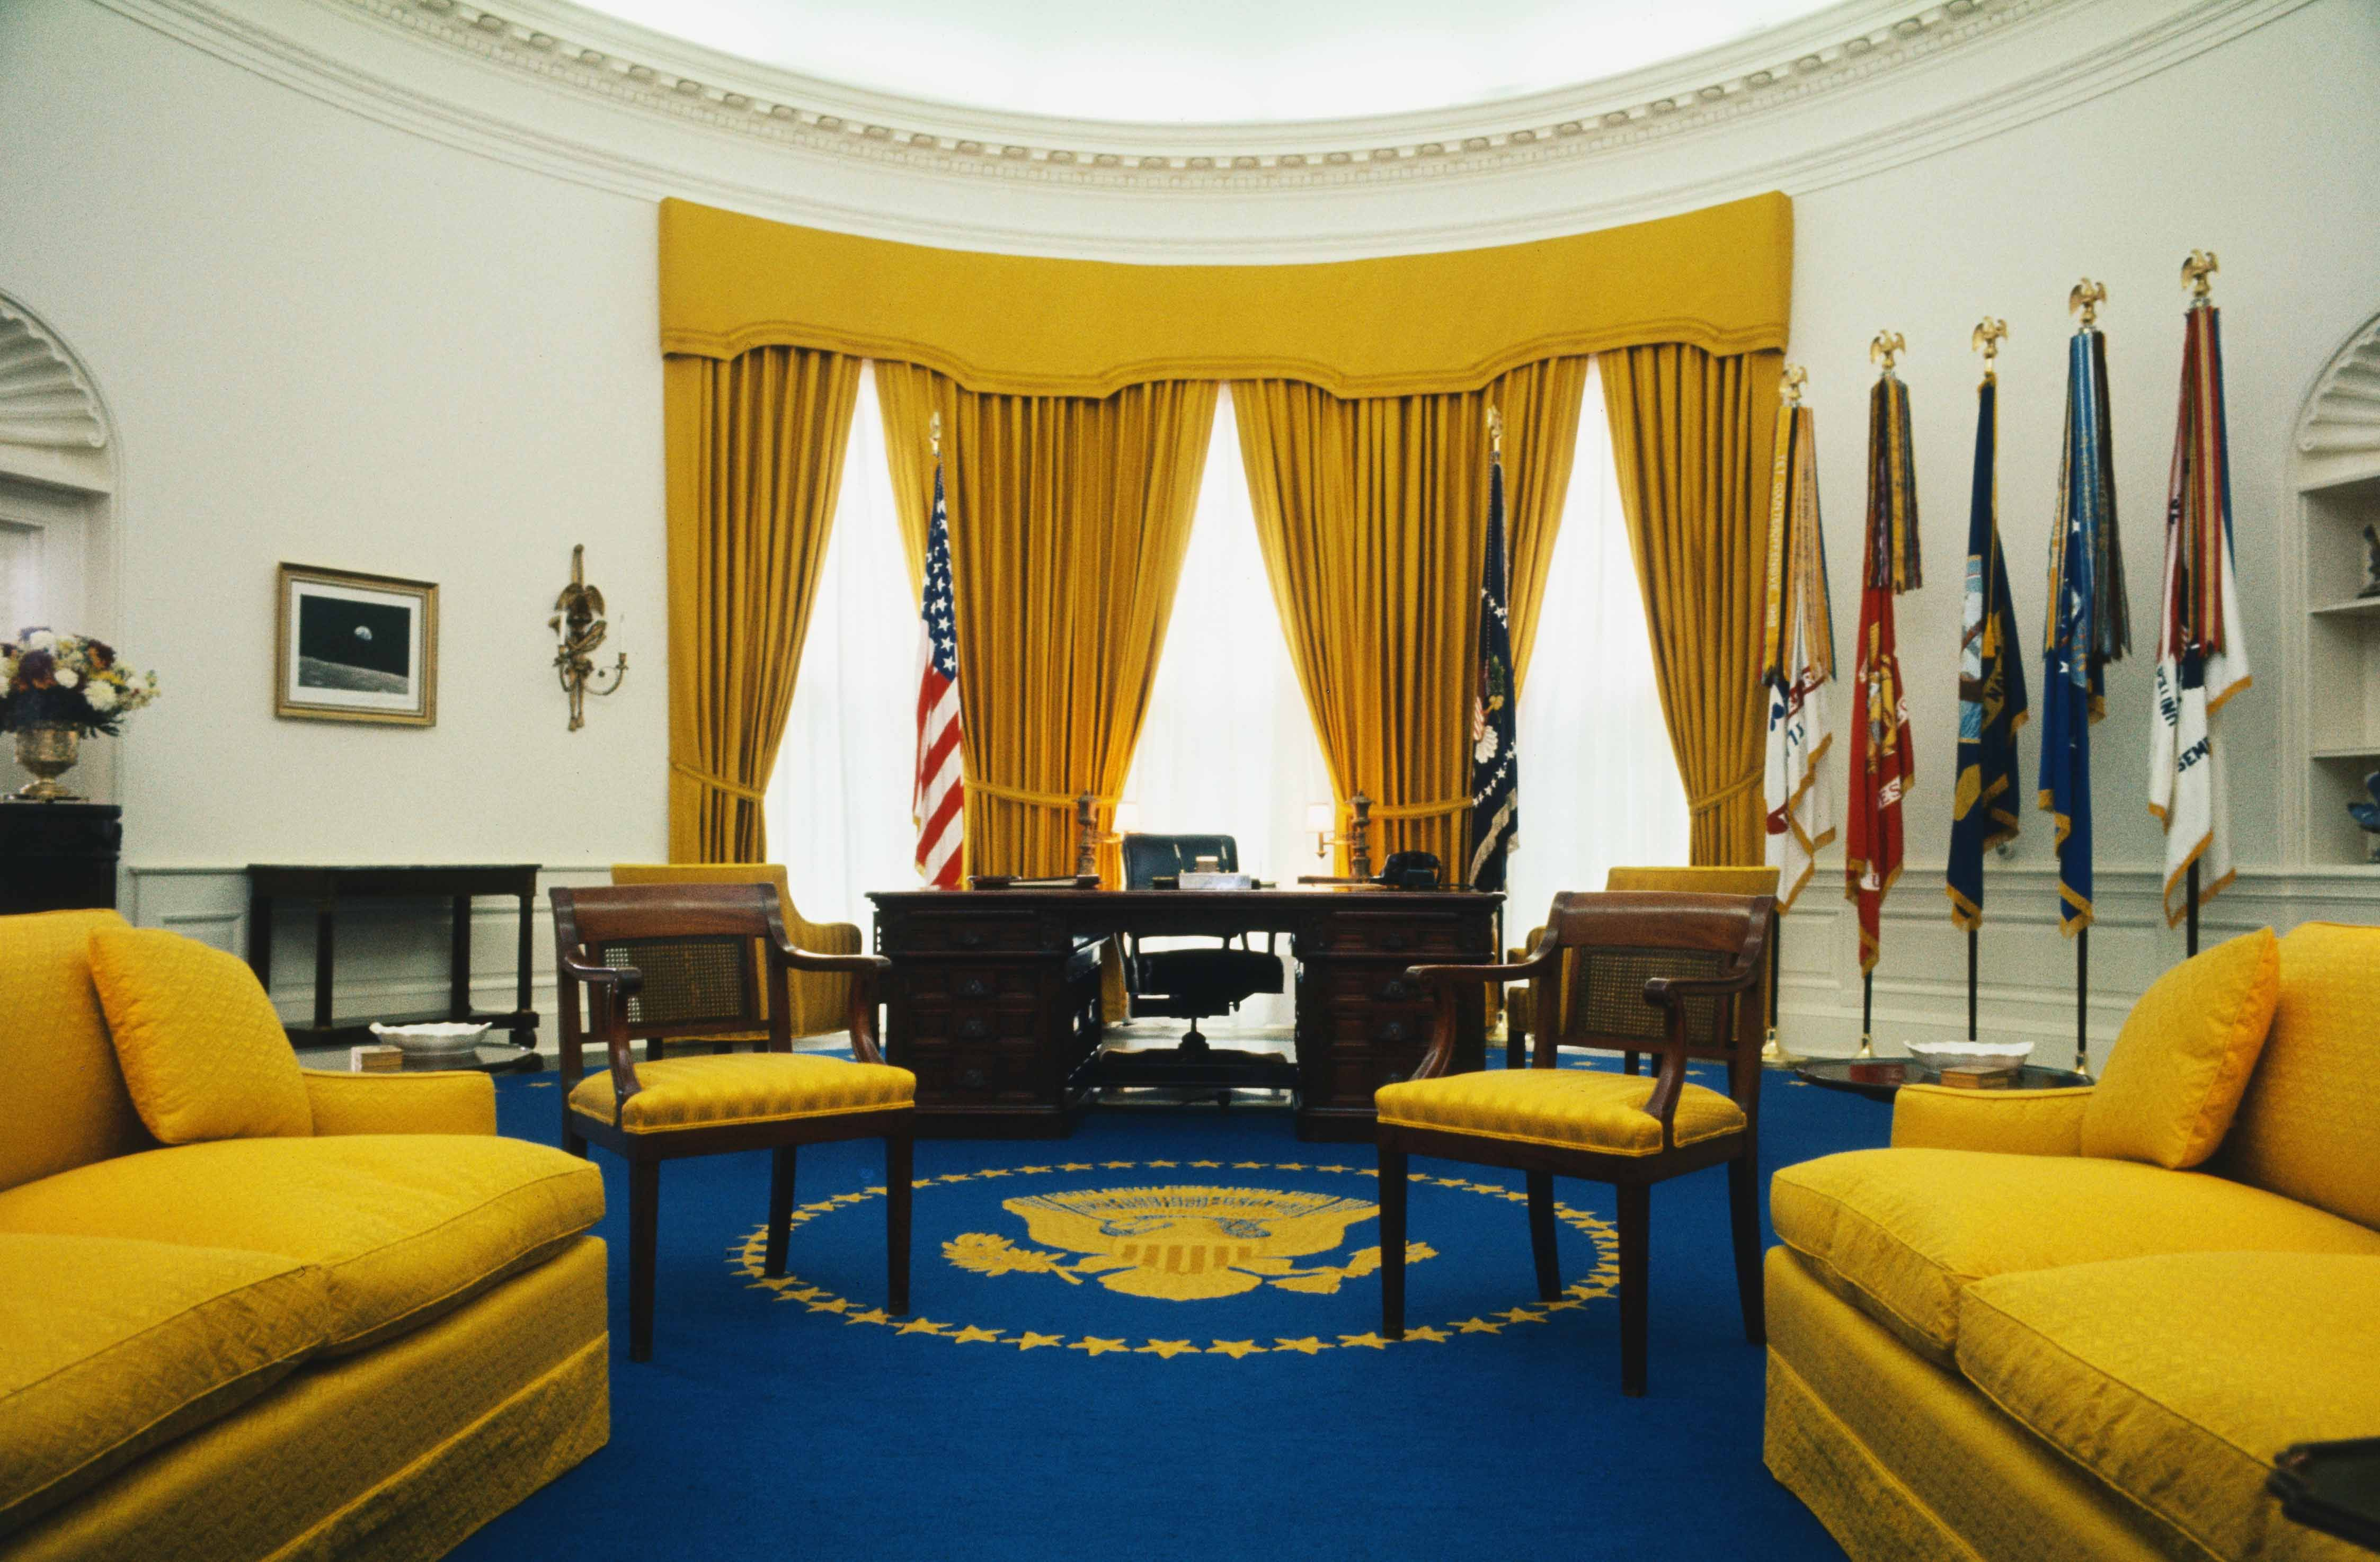 oval office design. Interesting Design Oval Office Decor Changes In The Last 50 Years  Pictures Of From  Every Presidency To Design R